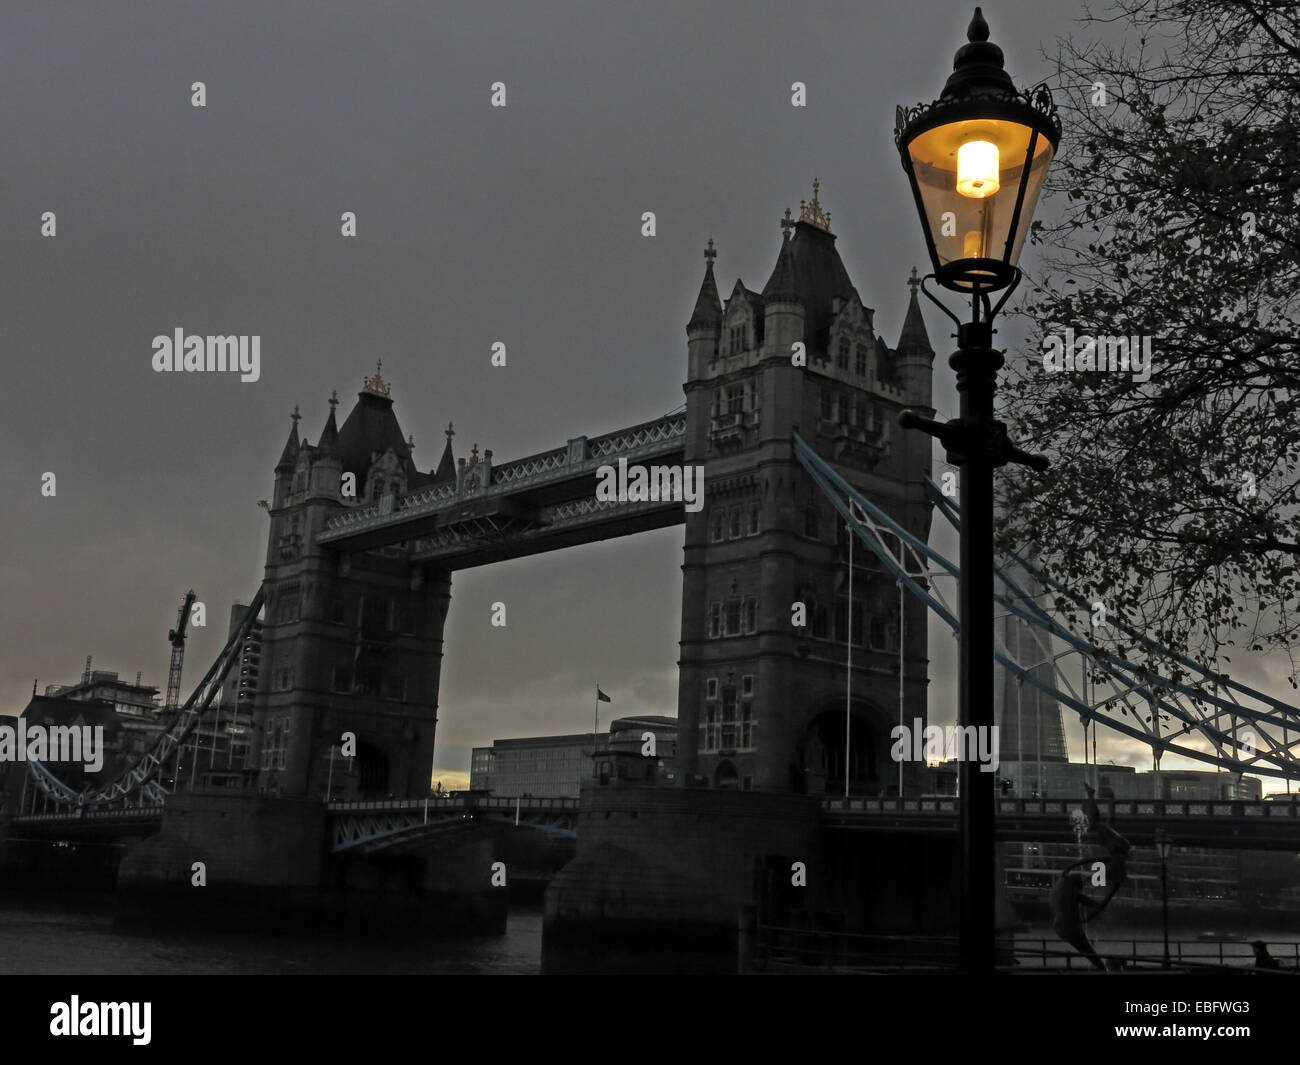 greater,night,evening,shot,United,Kingdom,GB,Great,Britain,hidden,icon,iconic,UK,street,light,old,fashioned,lighting,from,St,Catherines,dock,docks,Catherine,tourist,tourism,moody,interesting,atmospheric,hill,Towerhill,history,victorian,historic,grey,gray,SE1,2UP,SE12UP,closed,gotonysmith,crossing,crosses,pont,from,North,bank,northbank,hamlets,Bascule,suspension,famous,sight,sights,most,1884,Horace,Jones,and,John,Wolfe,Barrys,design,landmark